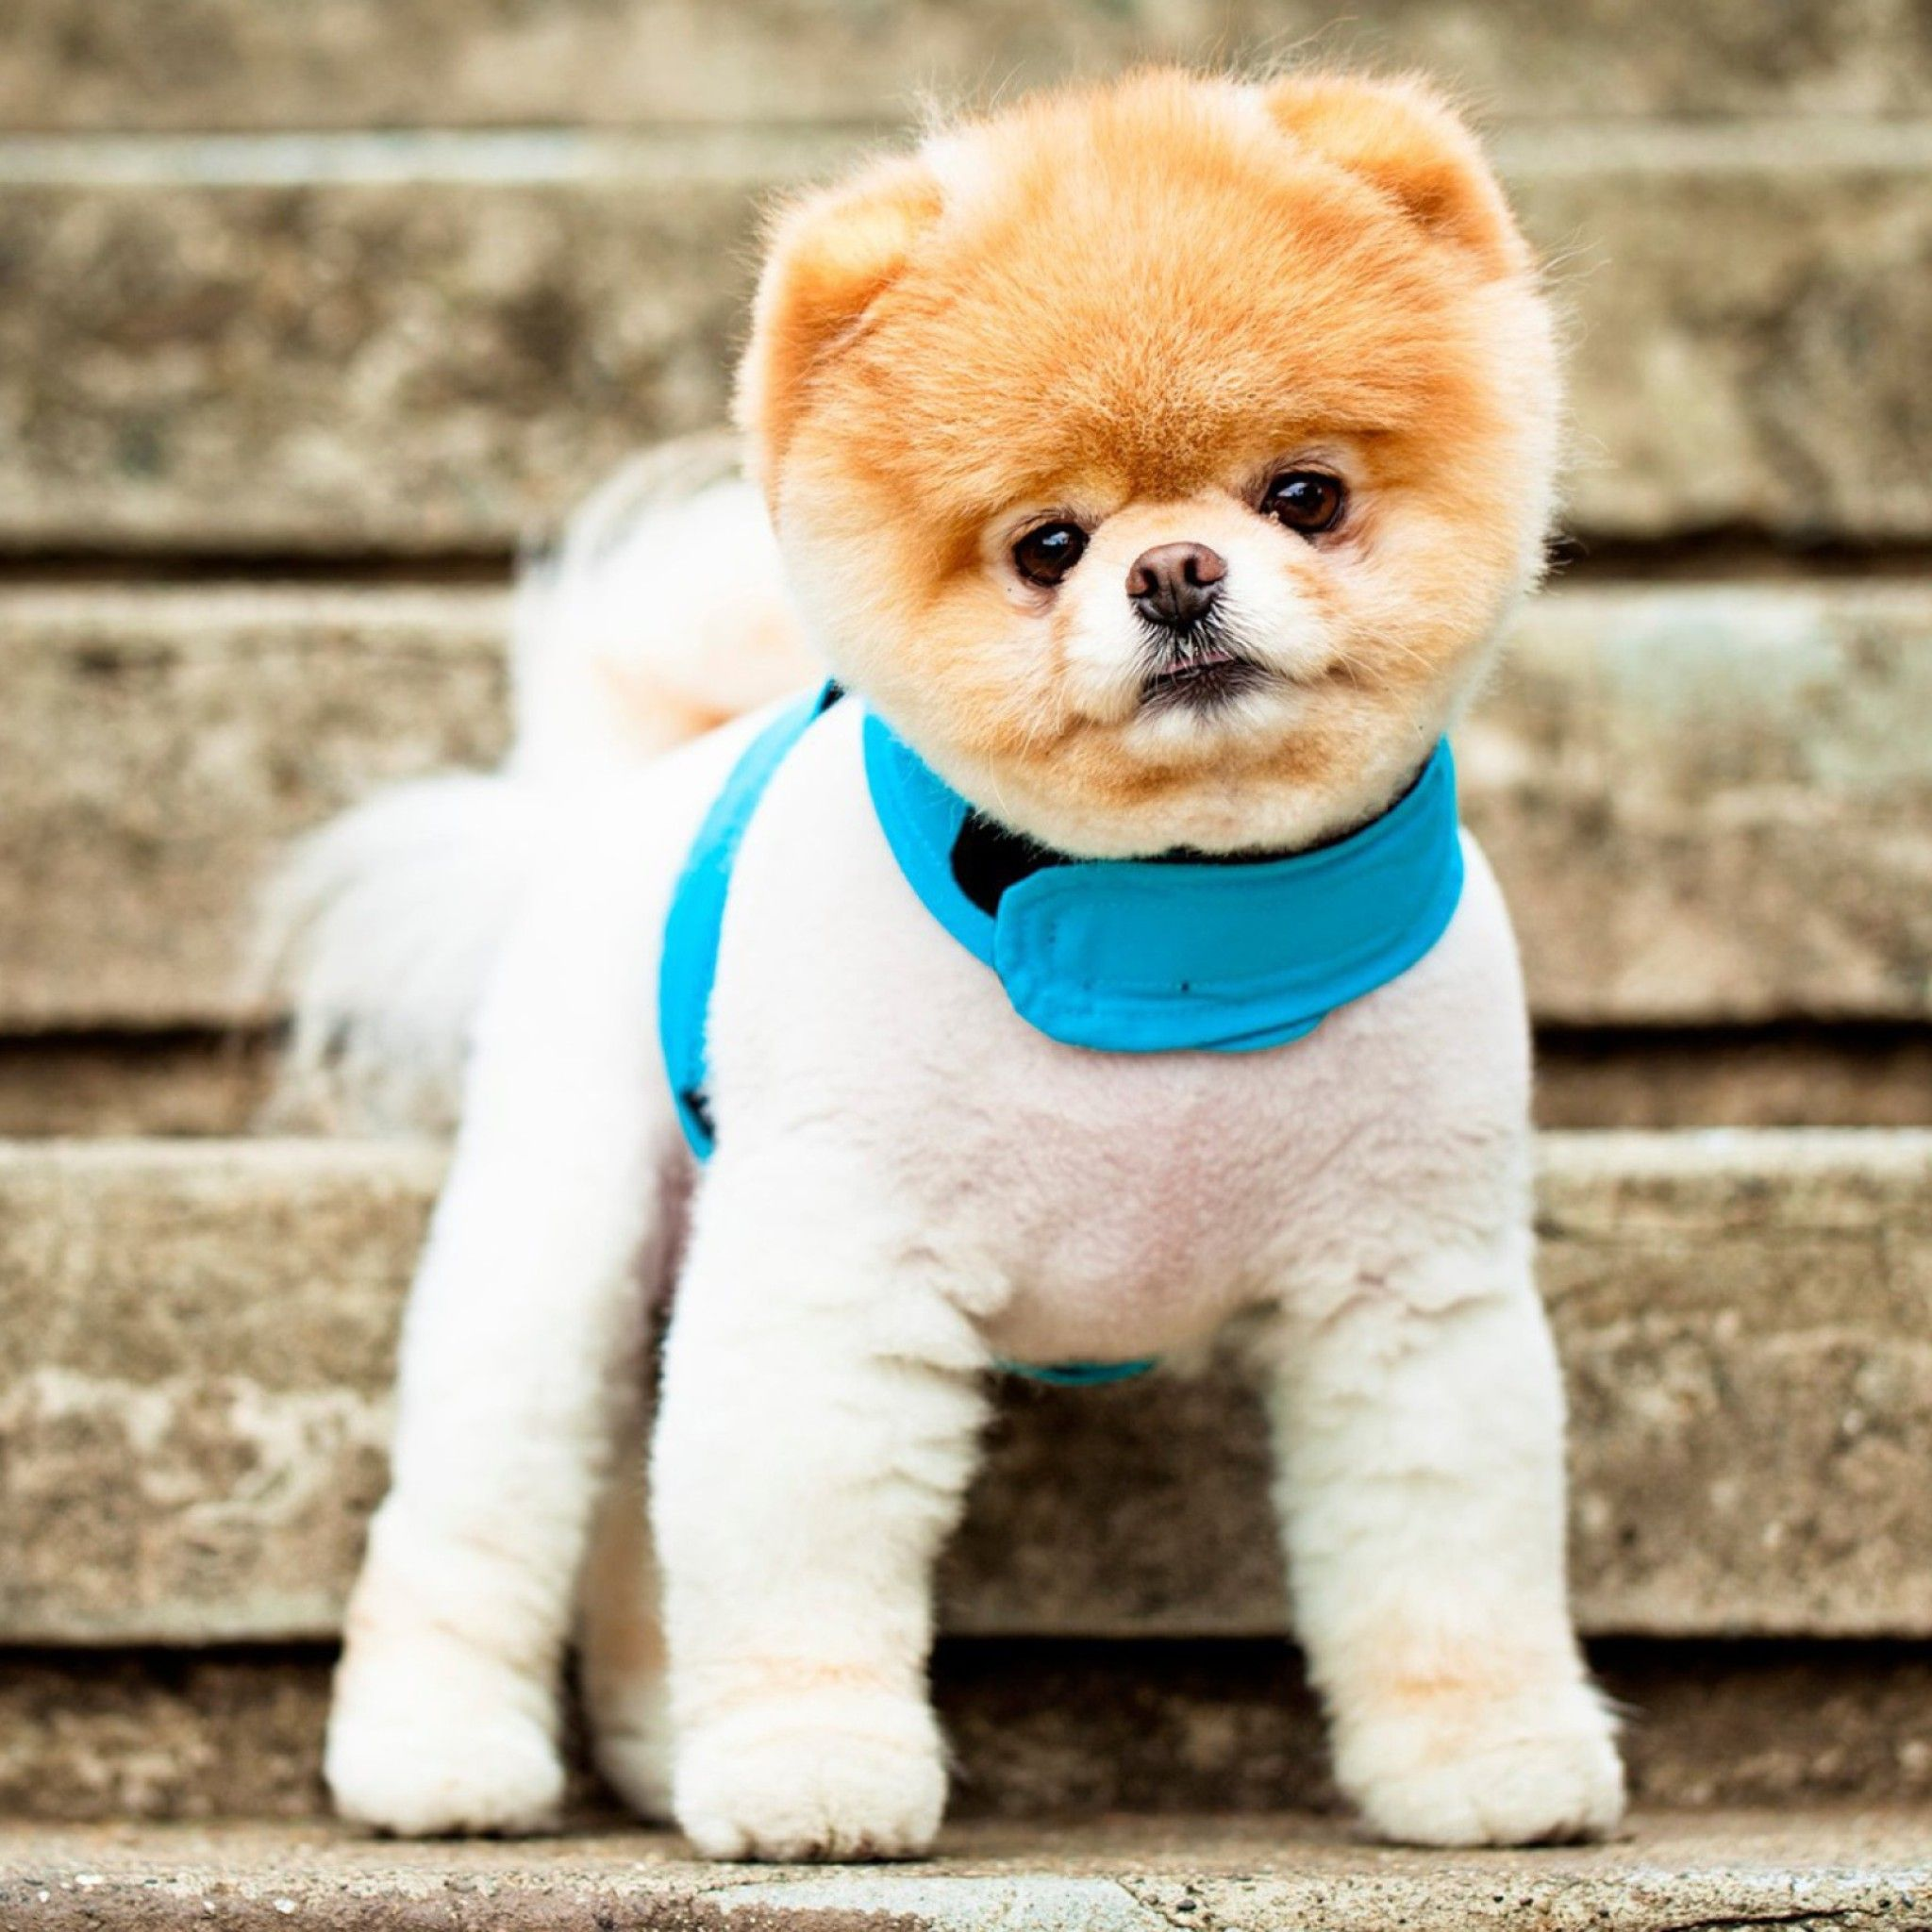 Boo the cutest dog tap to see more cute dog wallpapers mobile